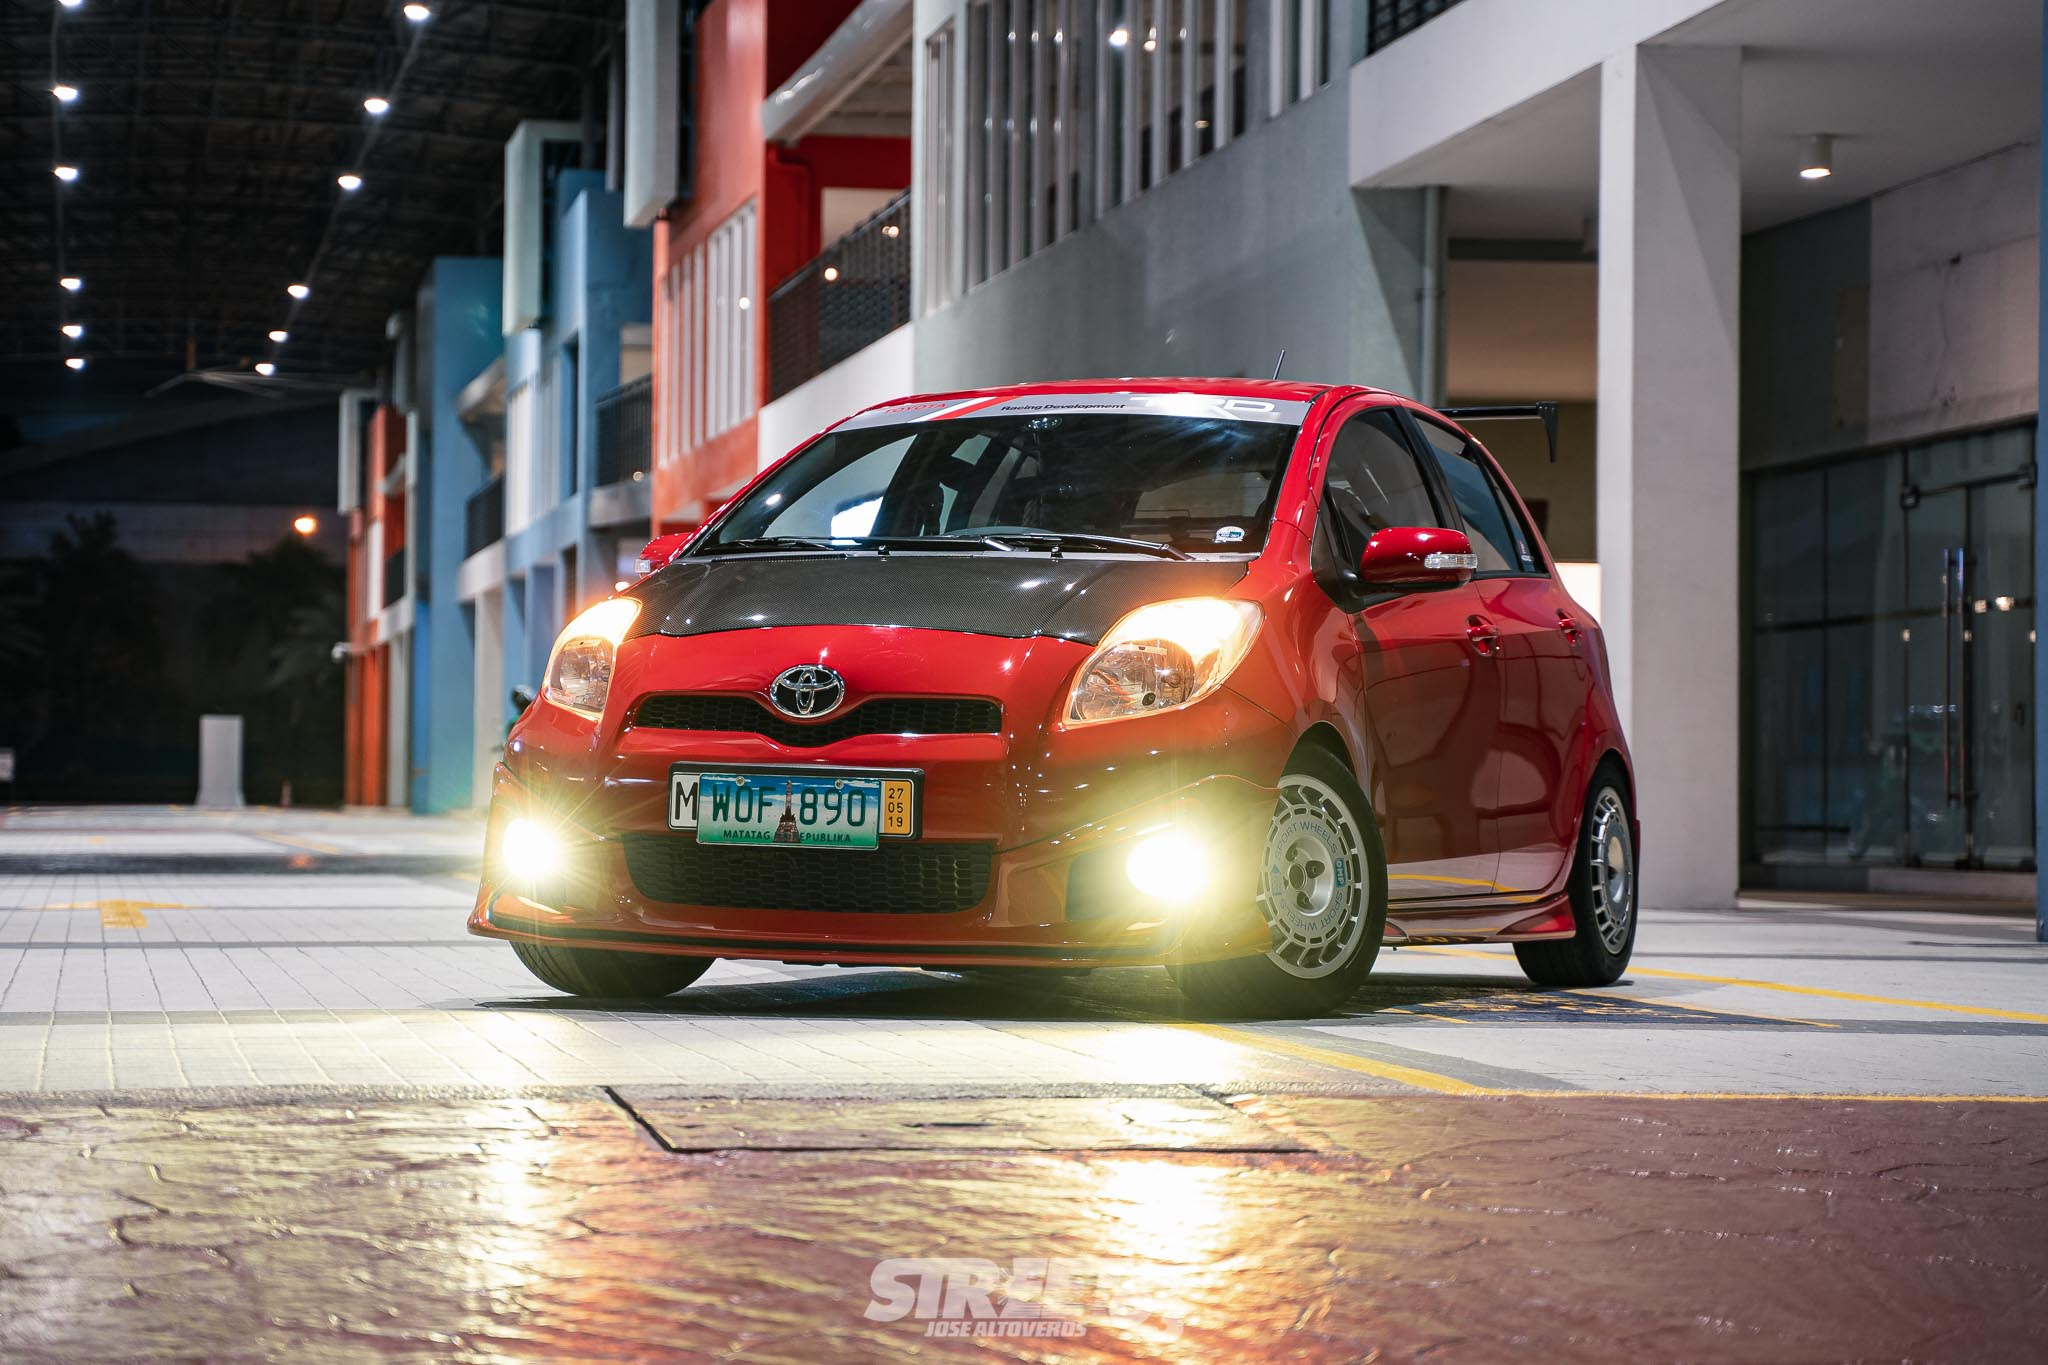 Supersprint Hero: A Supercharged Toyota Yaris